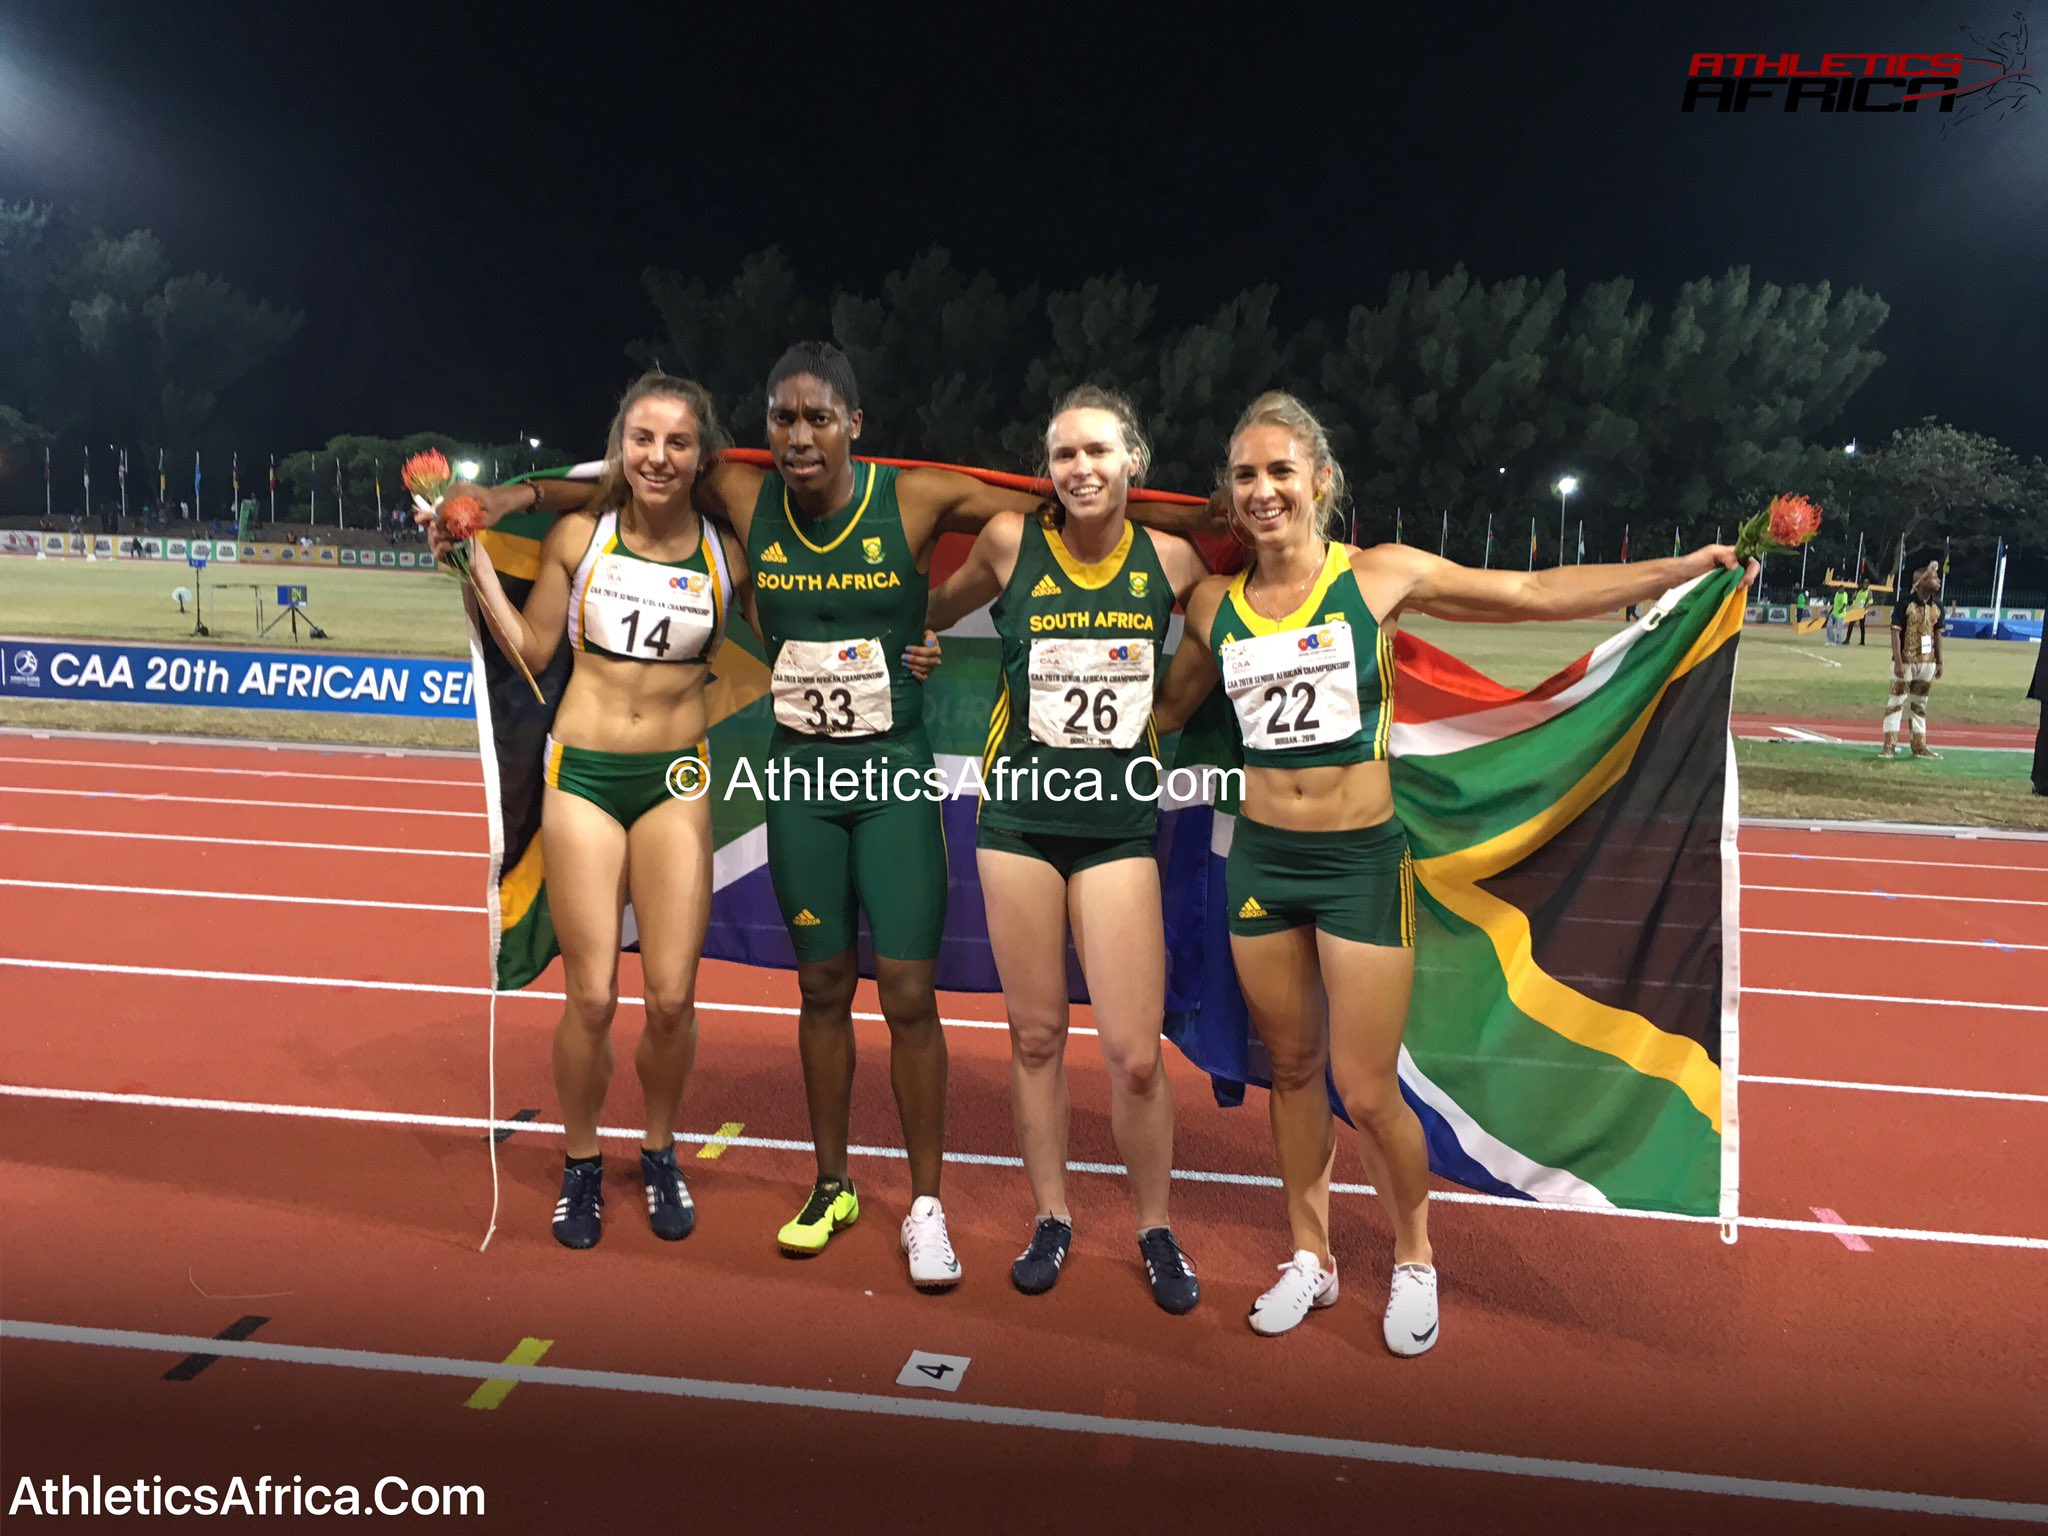 Wow! I need to catch my breath. #CasterSemenya just took on #Nigeria's 4x400m team & beat them in #SARecord 3:28.50 https://t.co/nx918TGUnX